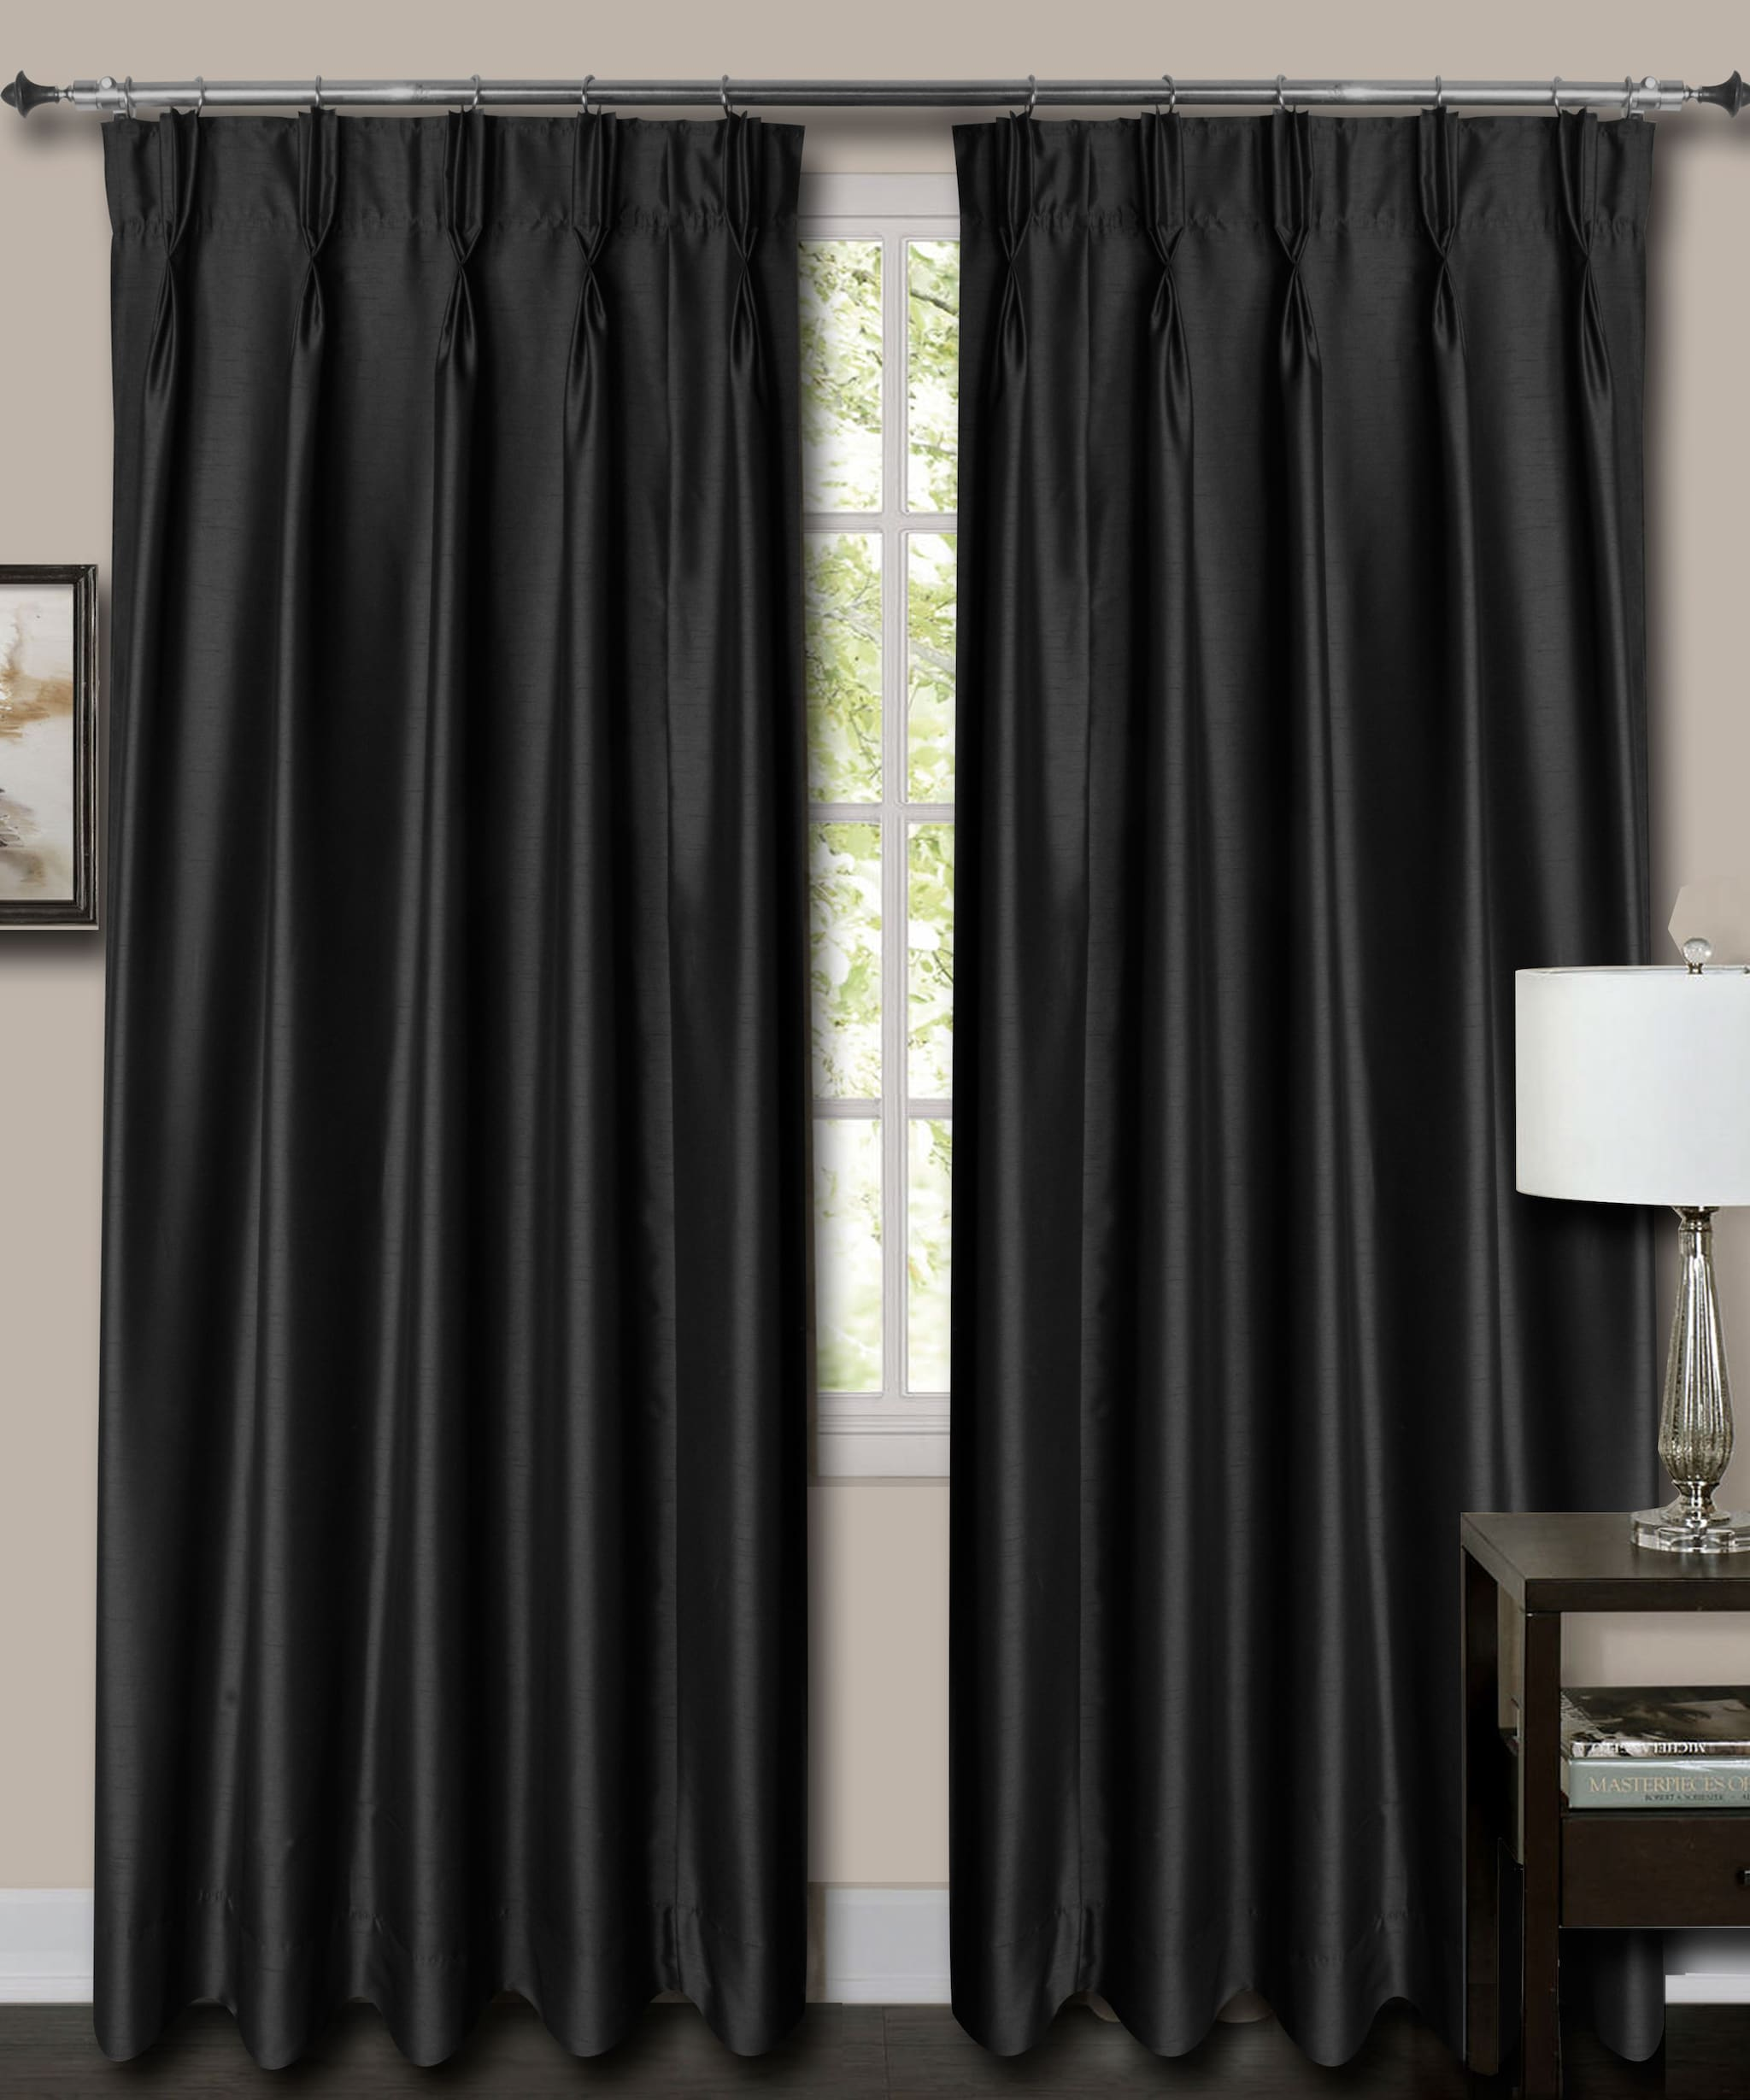 "French Pleat Top Black Faux Silk Dupioni Curtains. (78"" Wide,9 Feet Long,Without Lining)"